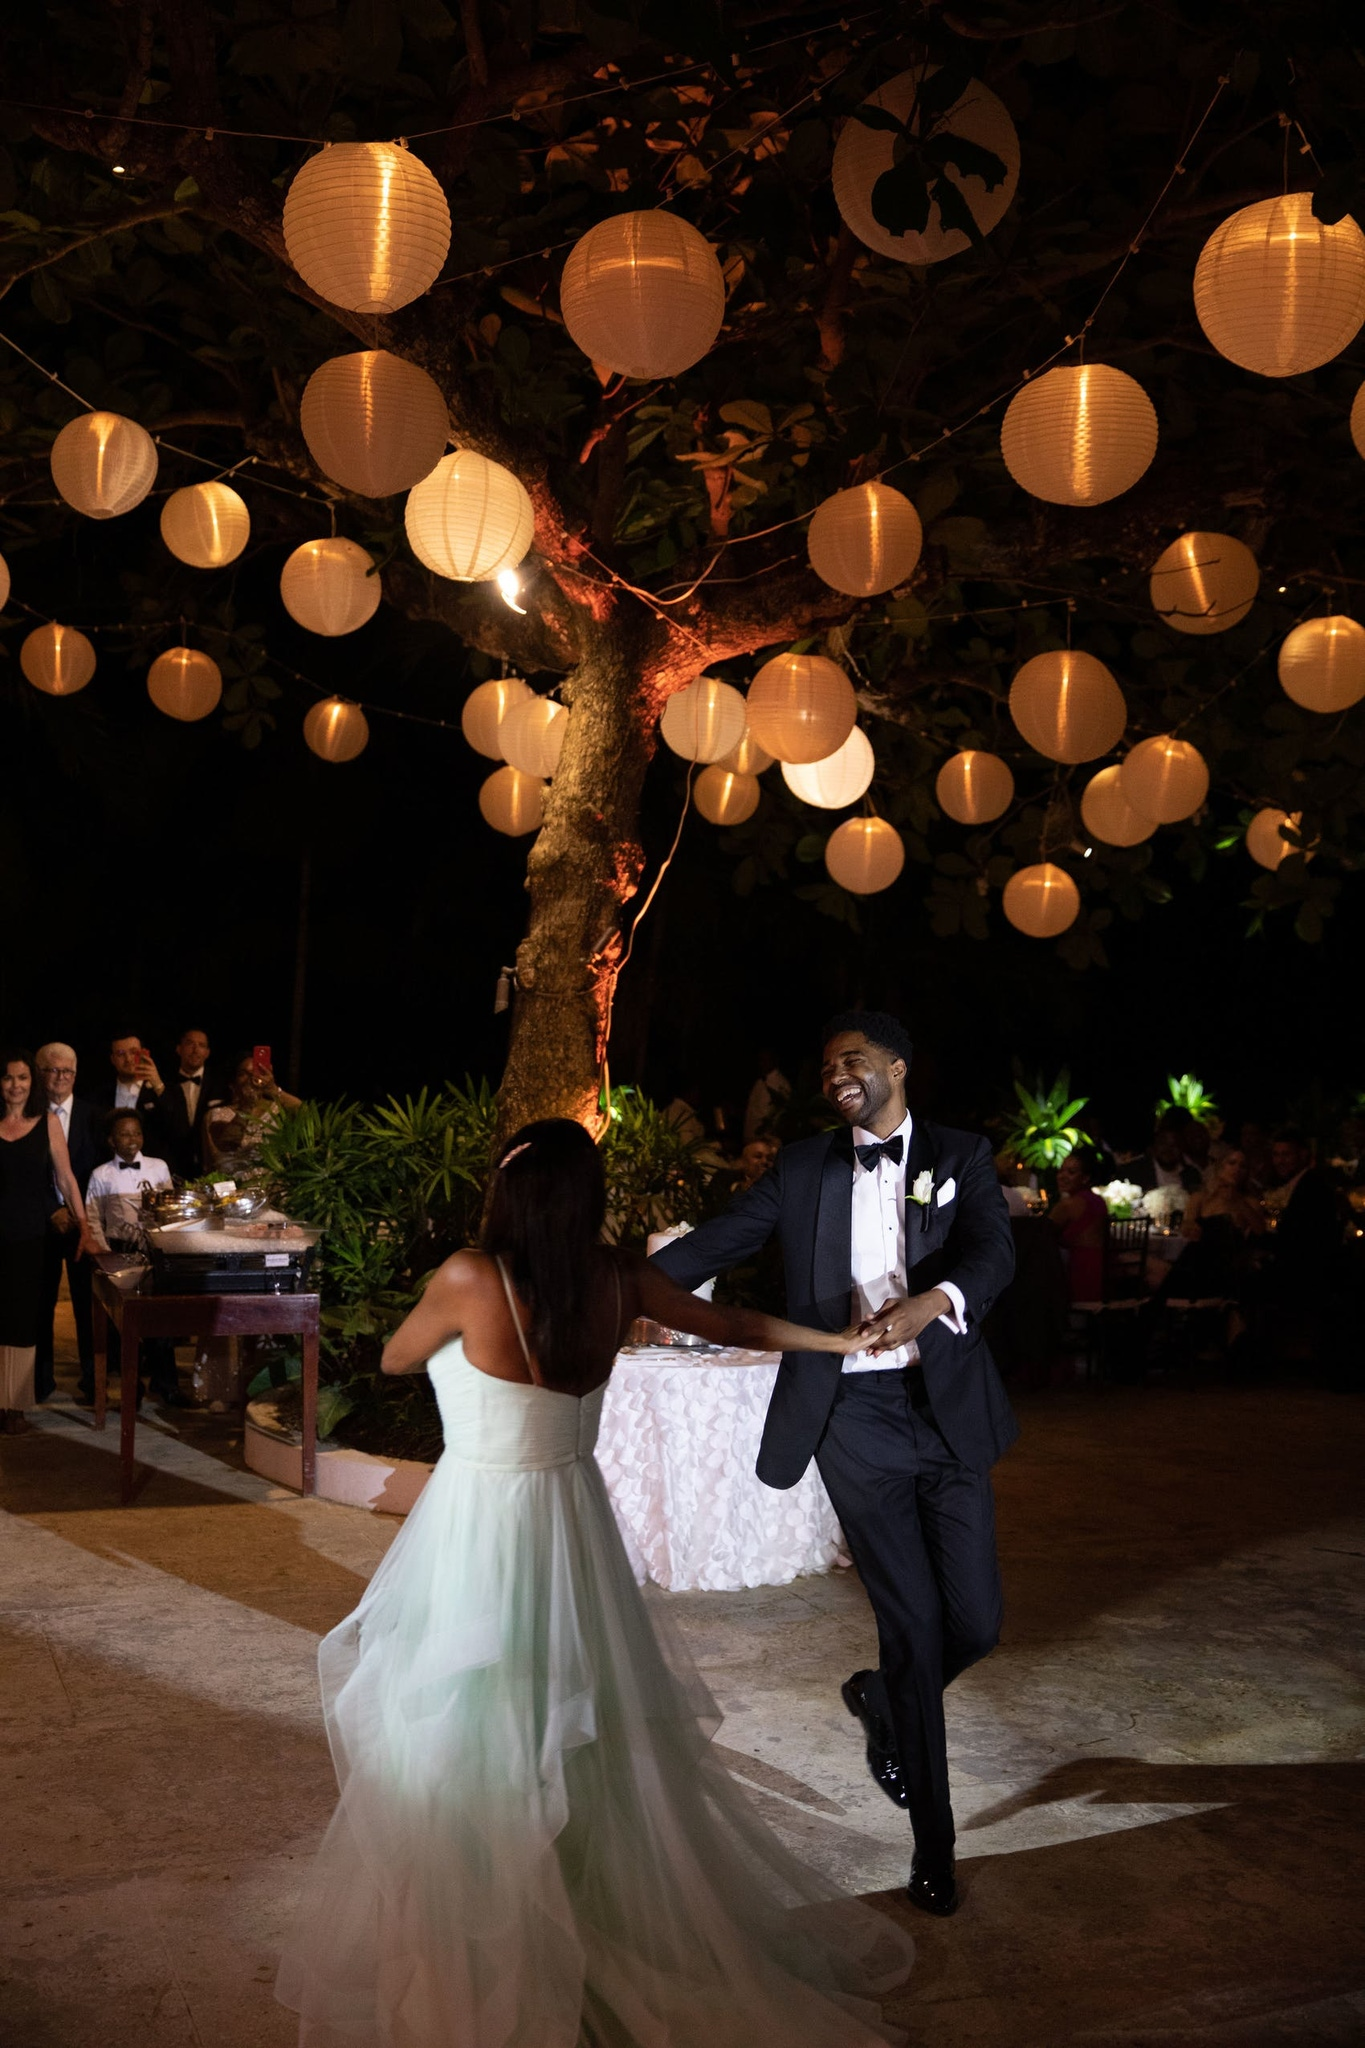 paper lanterns over bride and groom